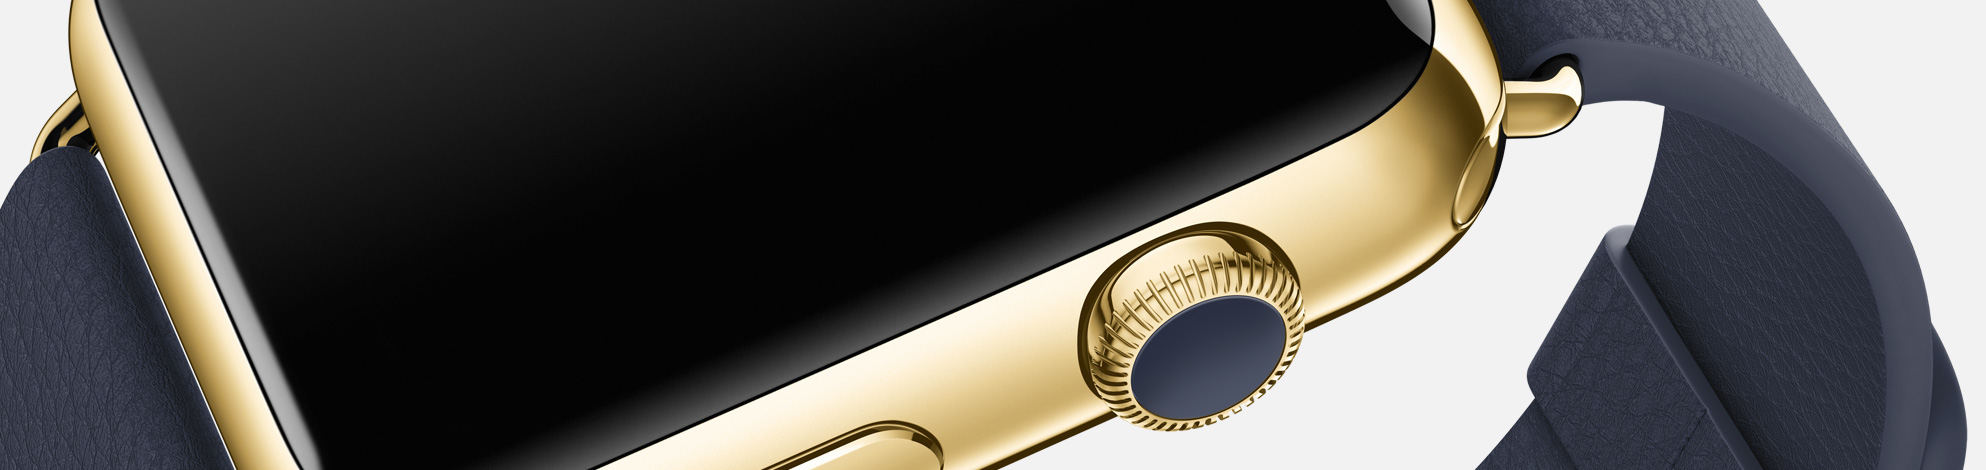 Apple Watch yellow_gold_blue_detail_large